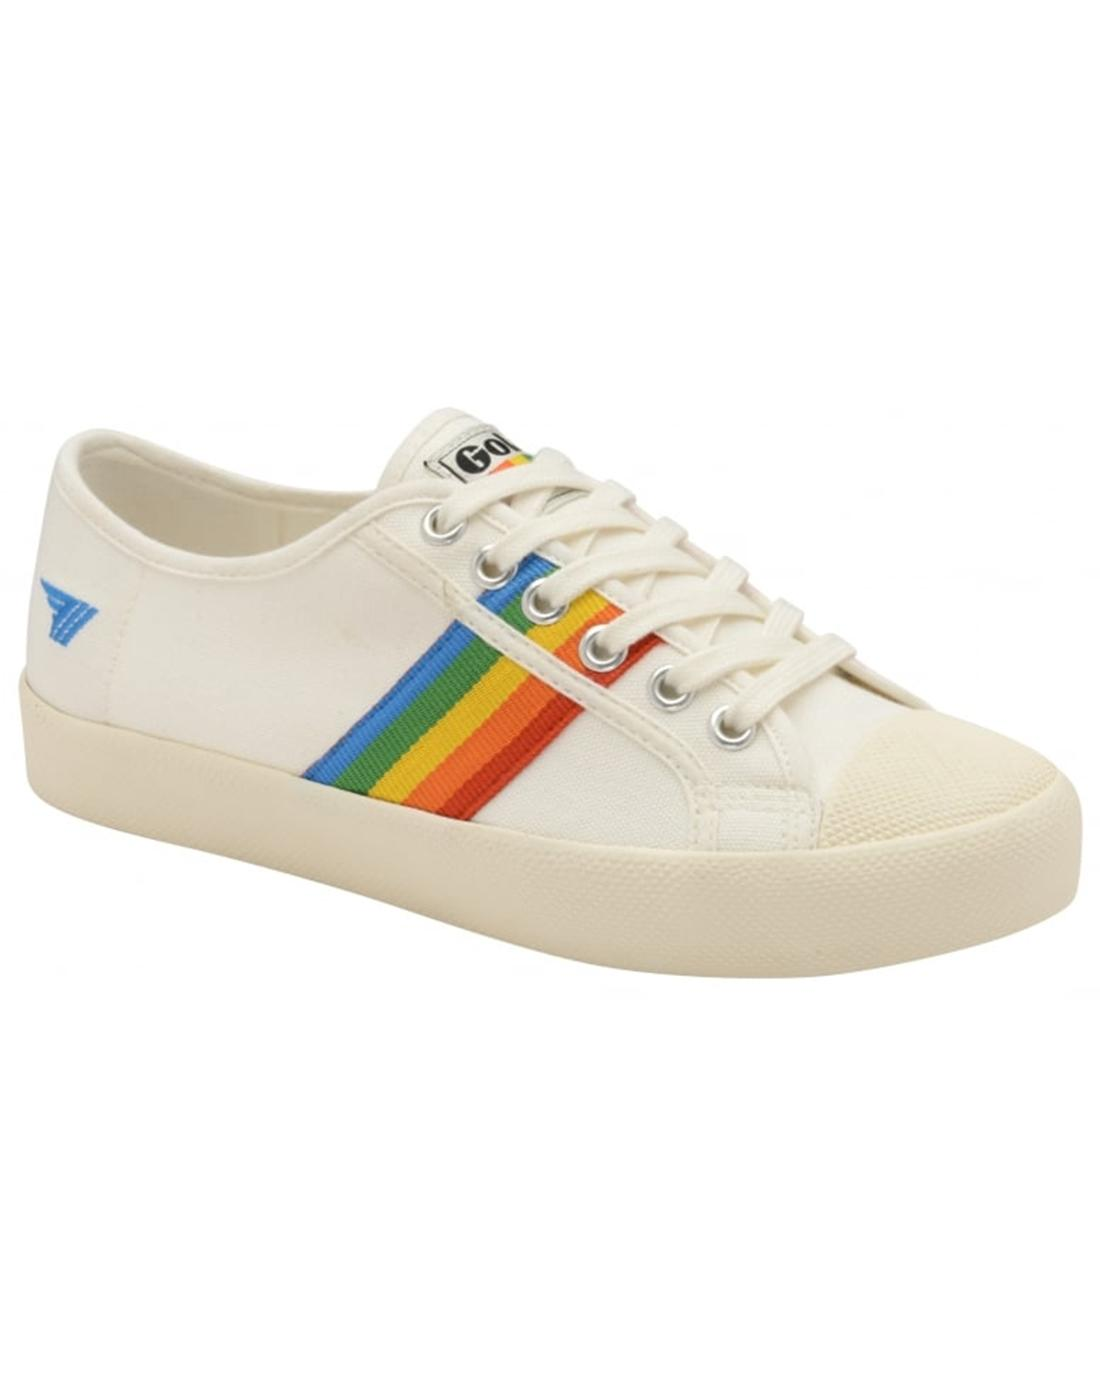 Coaster Rainbow GOLA Retro 90s Canvas Trainers OW